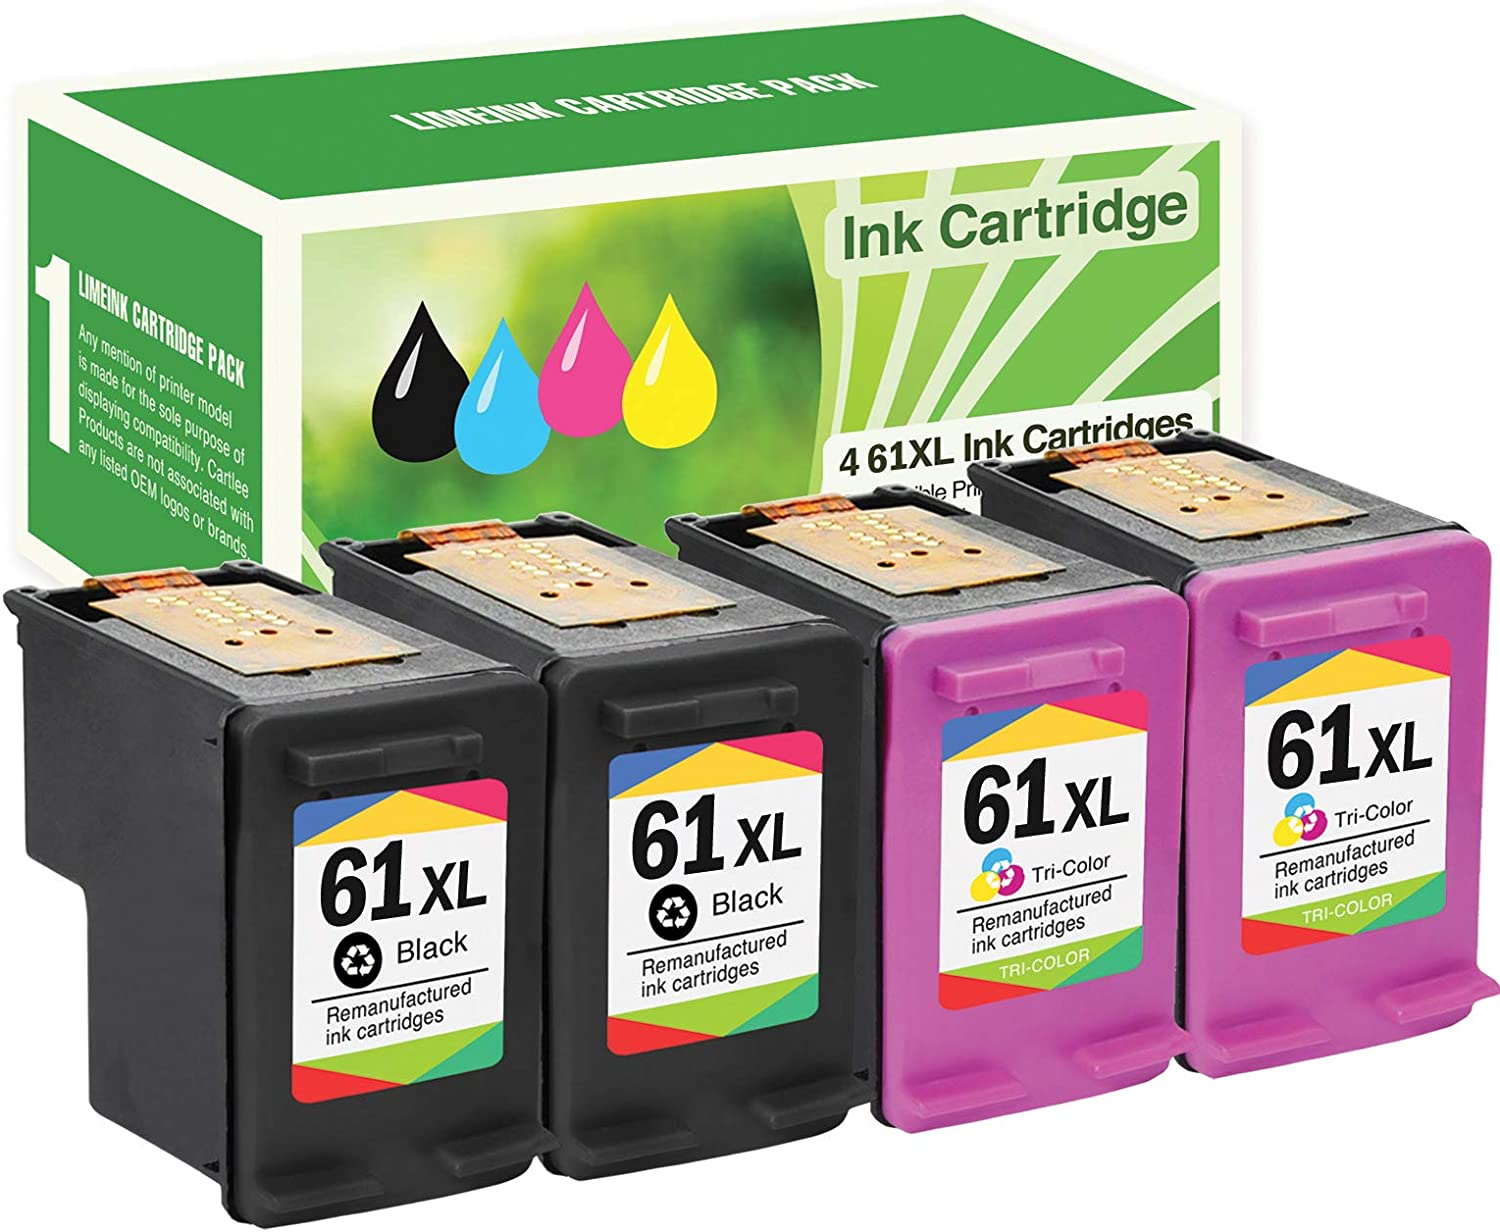 Limeink 4 Remanufactured Ink Cartridge Replacement 61XL High Yield for HP 1000 1010 1050 1055 1510 1512 2000 2050 2510 2512 2514 2540 2542 2543 2549 3000 3050 3050A 3054A 3051A Envy (2 Black, 2 Color)